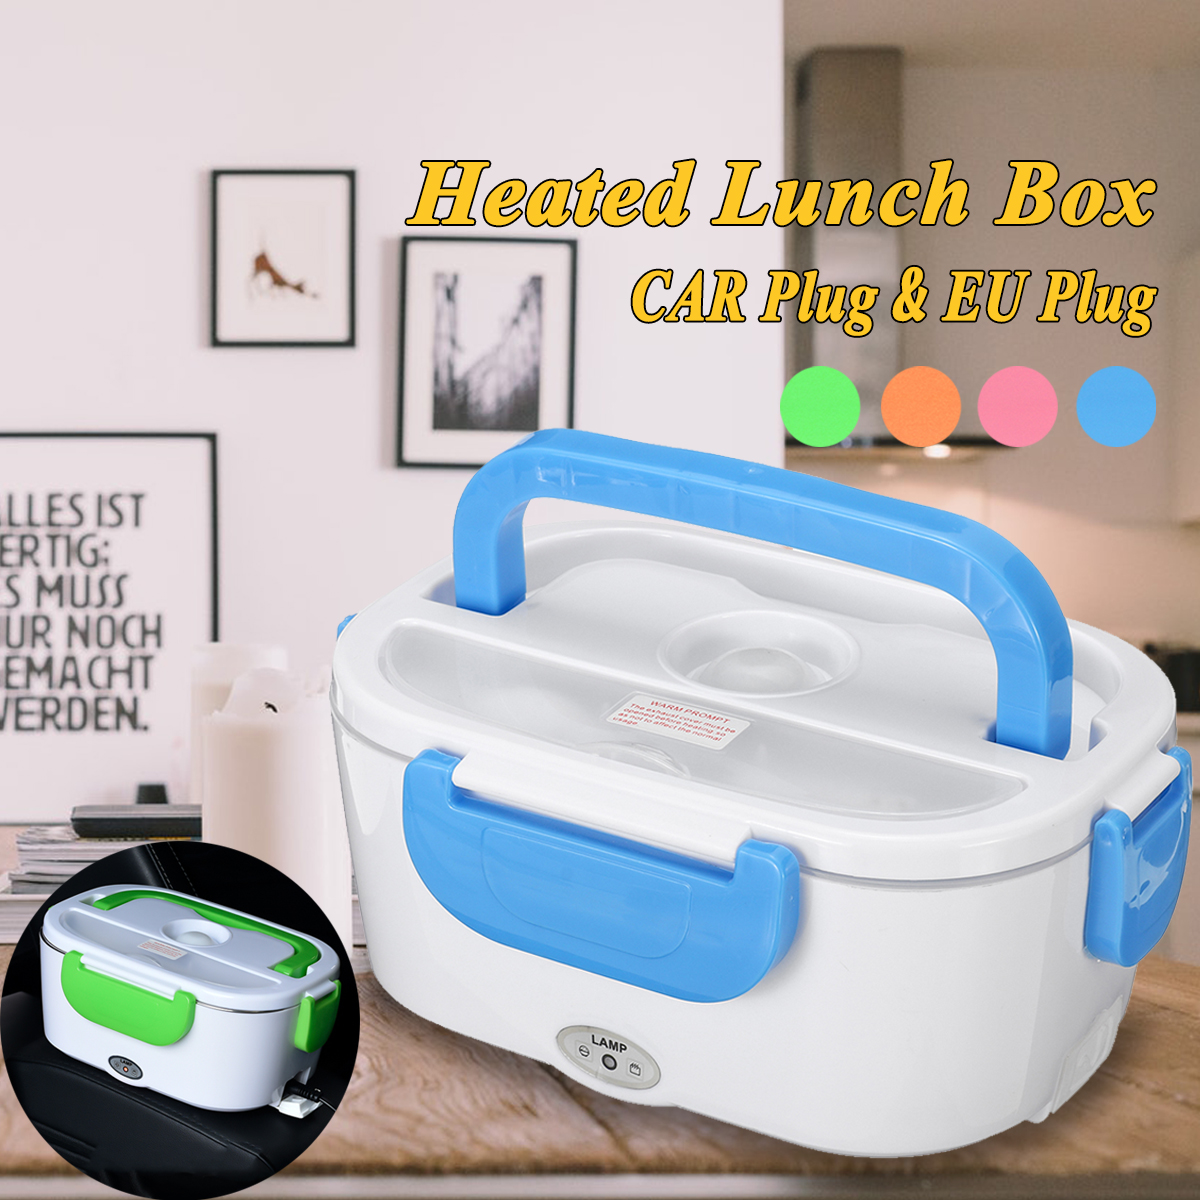 12V-24V/110V-240V 1.2L EU Plug Portable Removable Electric Lunch Box Car School Office Bento Box Food Heater Box